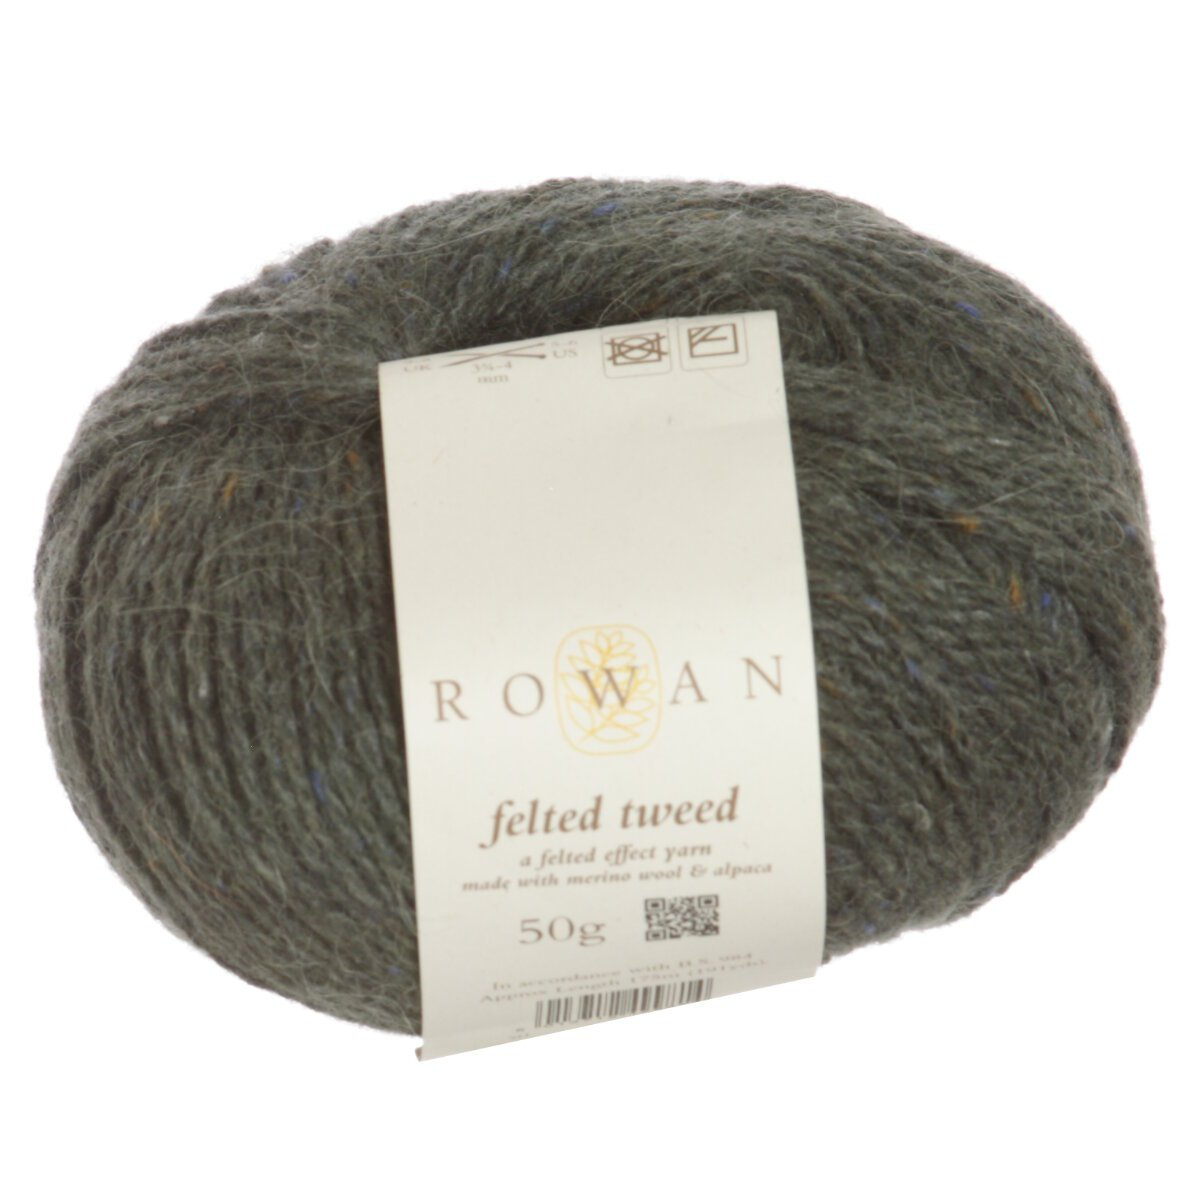 FELTED TWEED-KH ANCIENT